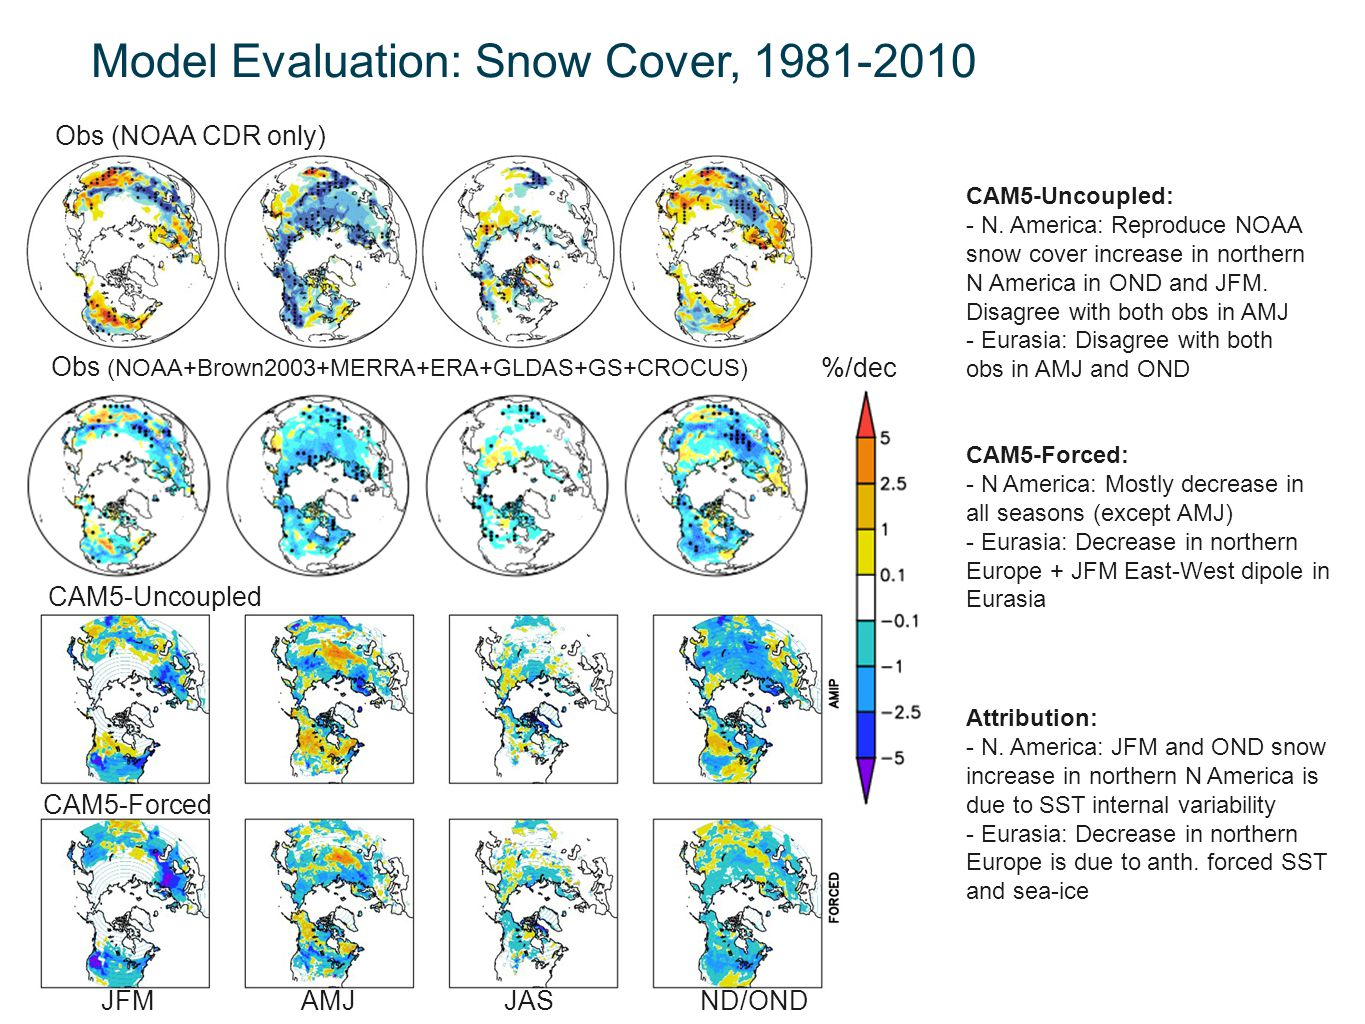 Model Evaluation: Snow Cover, 1981-2010